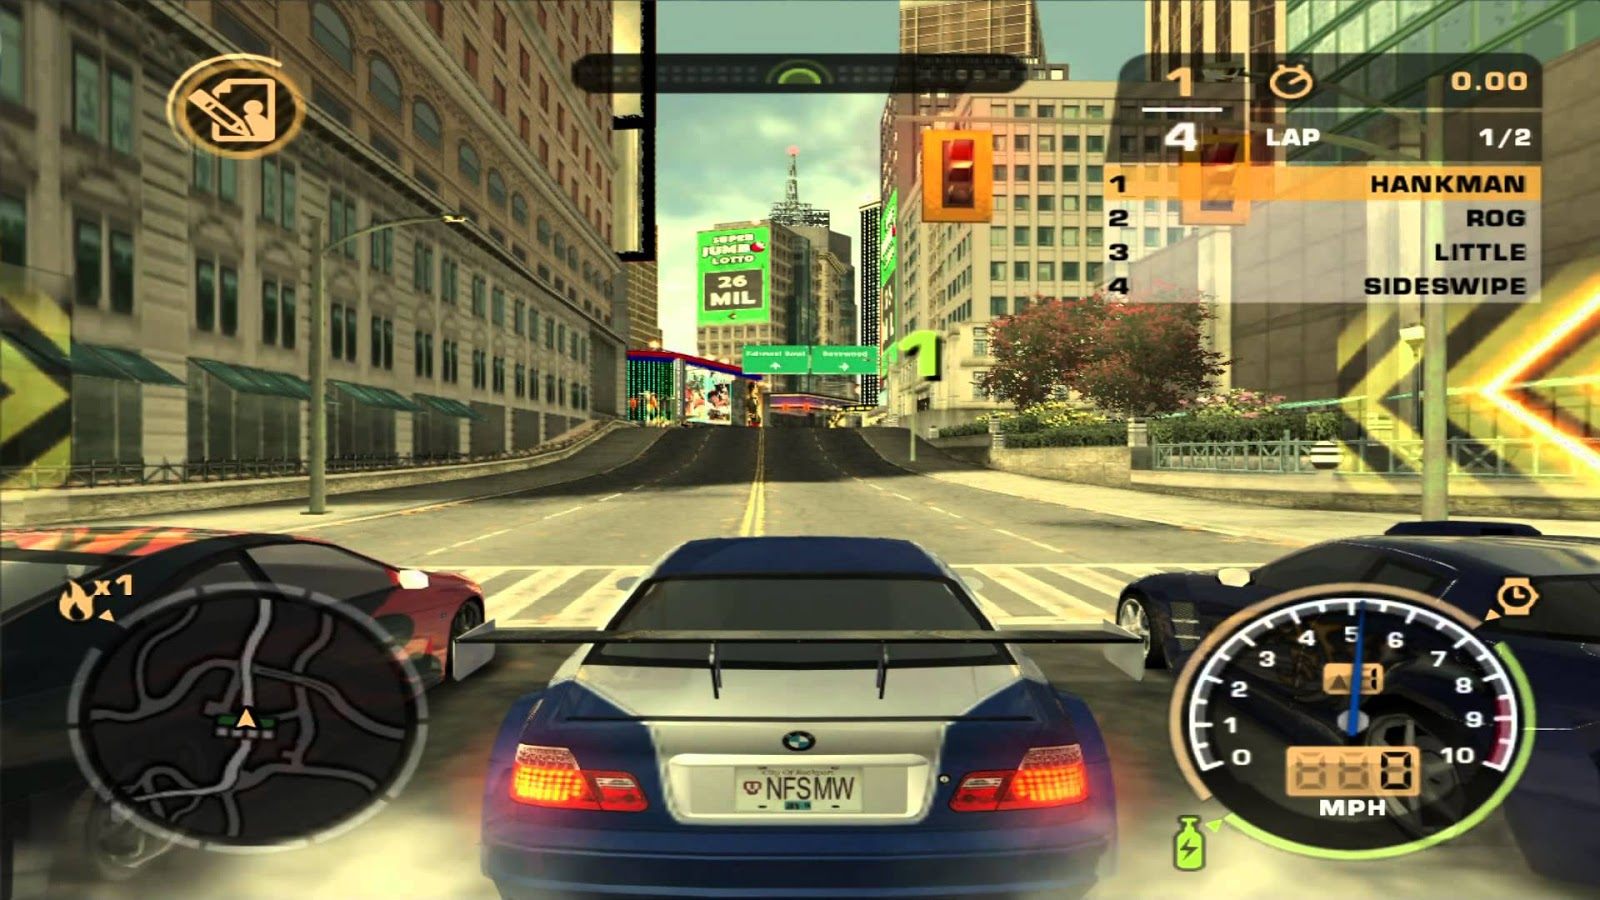 Need for speed most wanted for windows